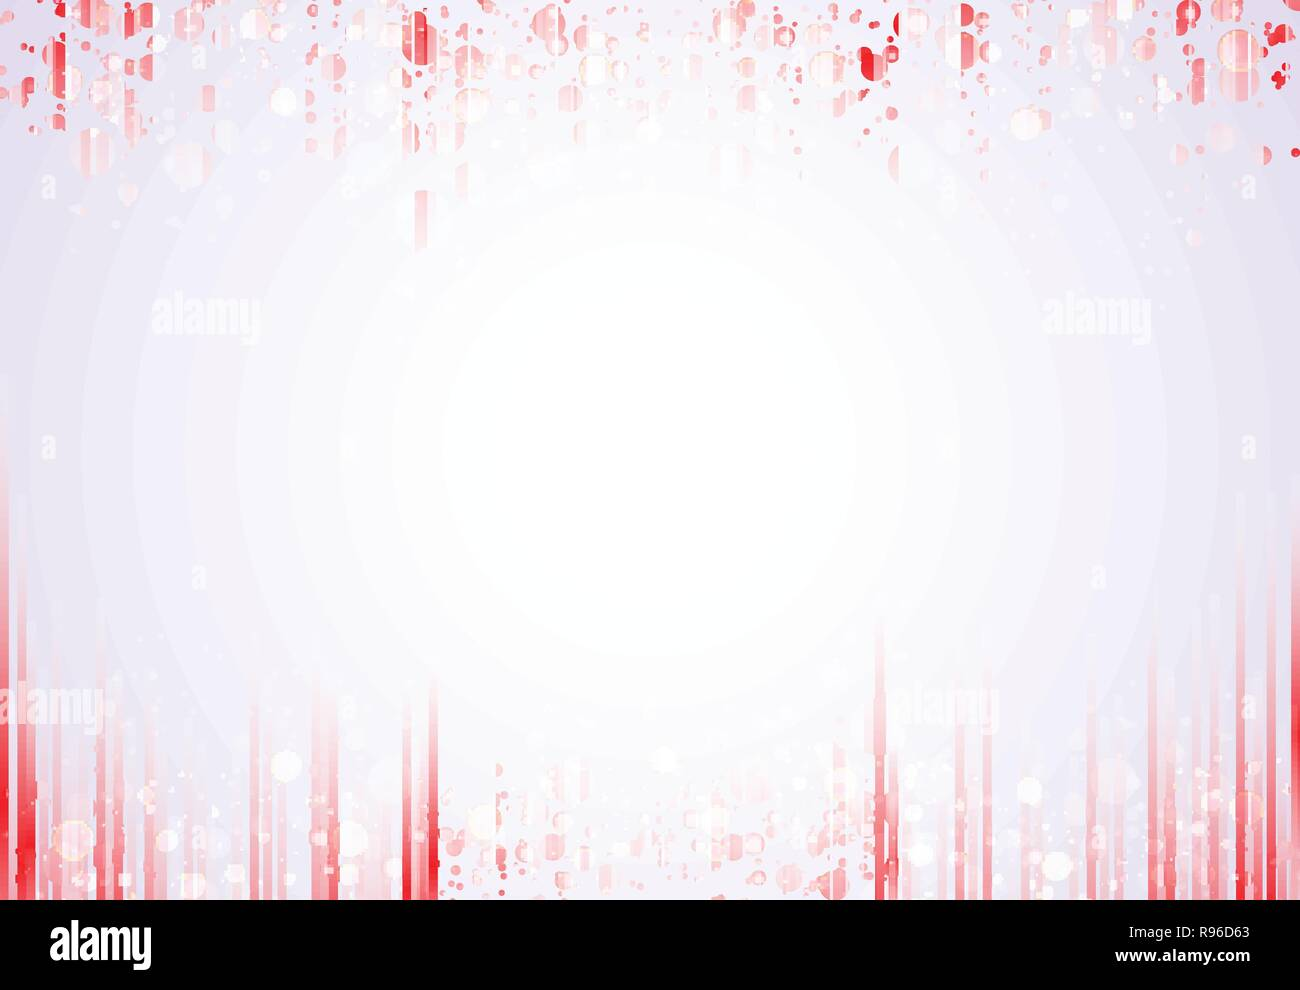 Template header and footers red vertical lines pattern with sparkle